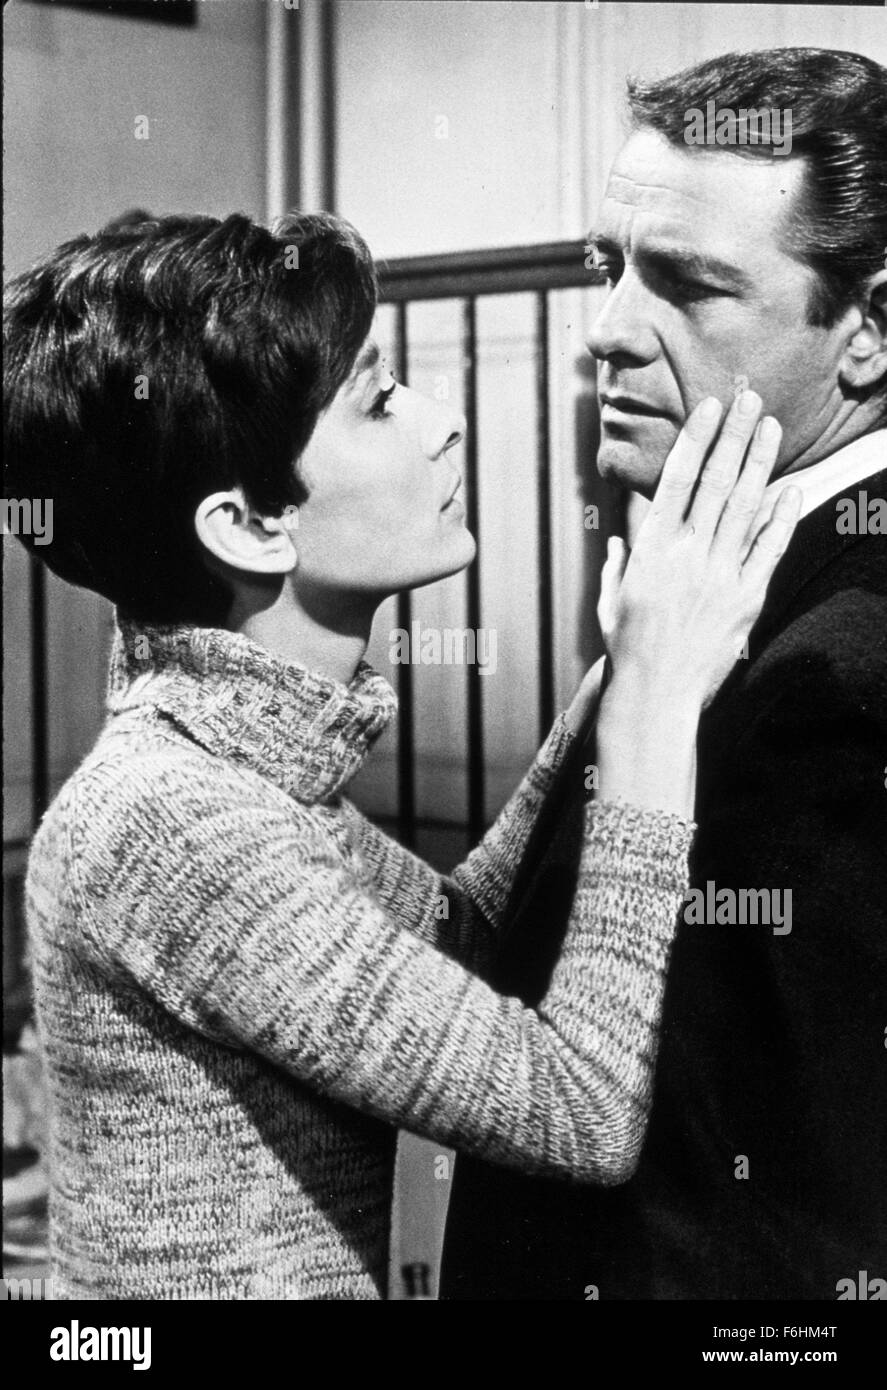 1967, Film Title: WAIT UNTIL DARK, Director: TERENCE YOUNG, Studio: WARNER, Pictured: 1967, RICHARD CRENNA, AUDREY - Stock Image